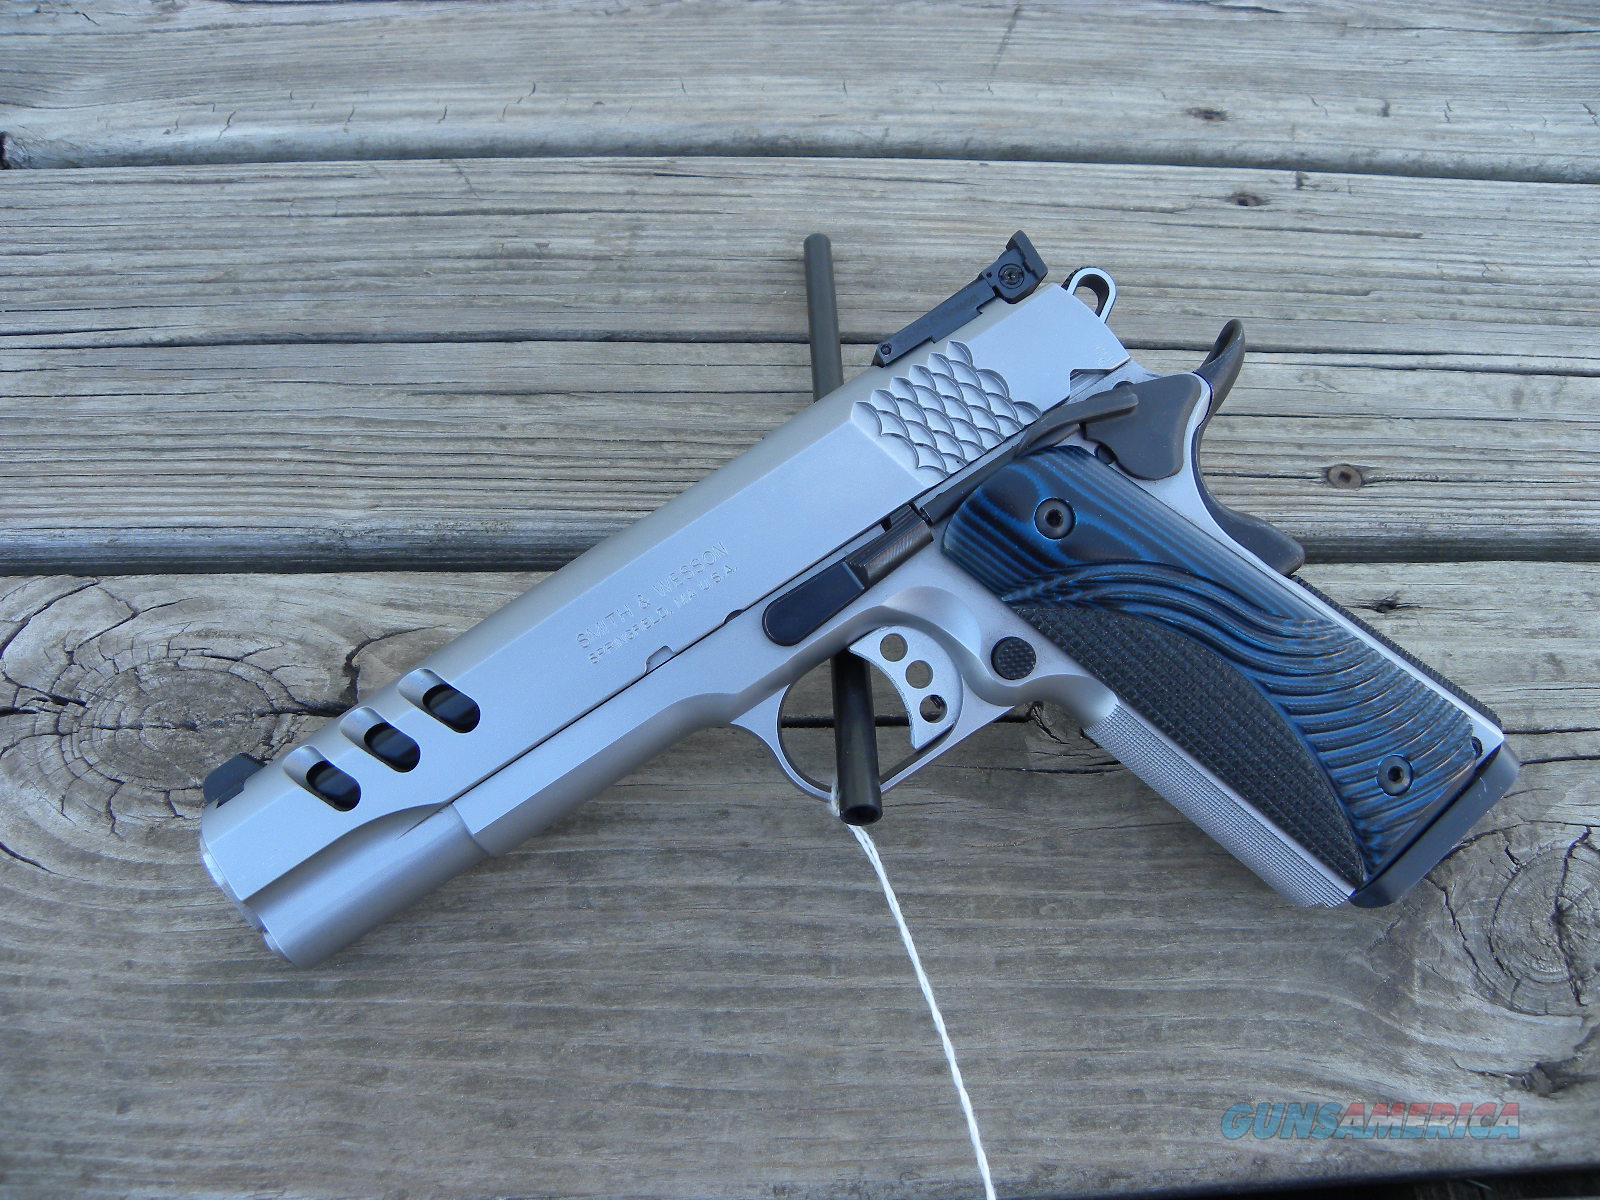 BLEM NIB Smith and Wesson 1911 PC 170343  Guns > Pistols > Smith & Wesson Pistols - Autos > Steel Frame